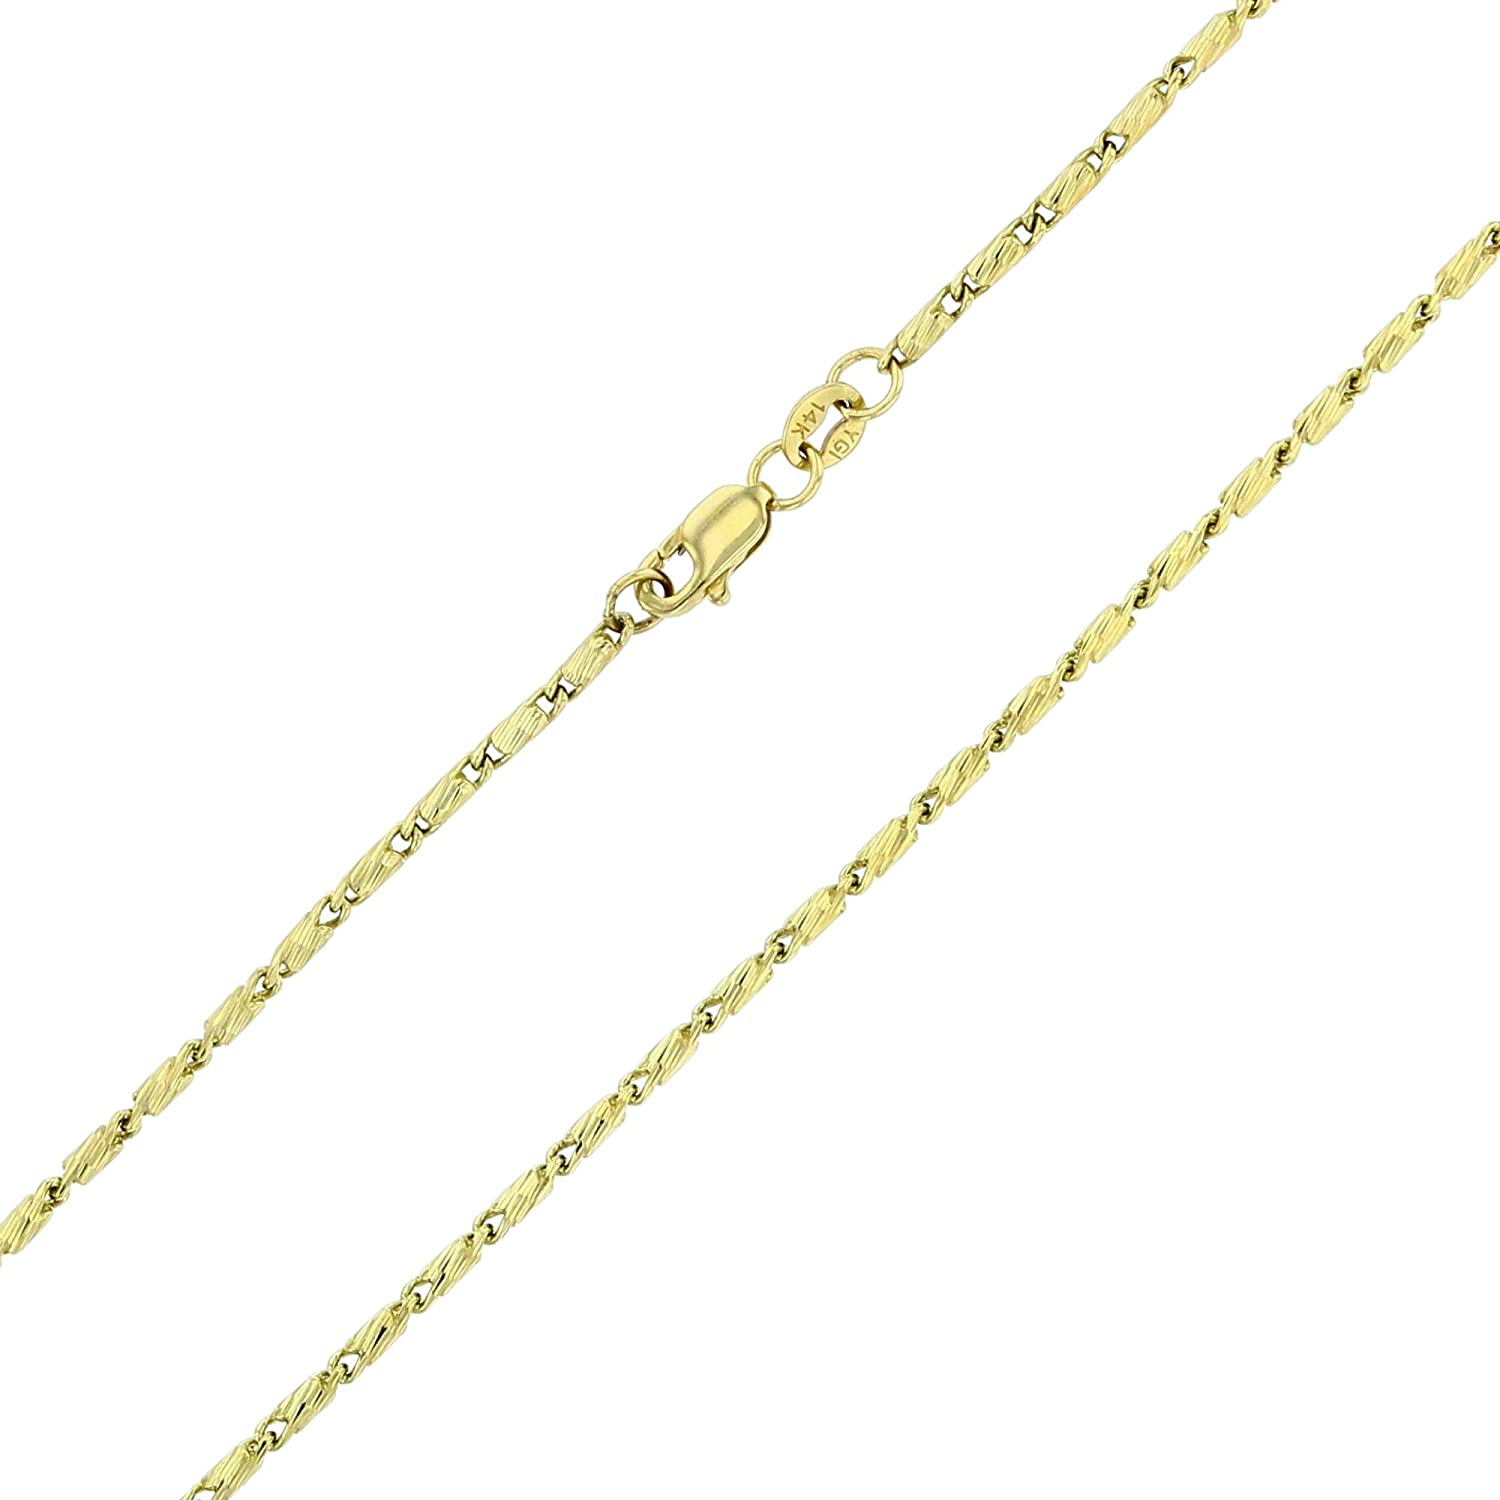 Gold Razo Necklaces for Men and Women Italian Gold Necklaces 14K Yellow or White Gold Solid .77mm-1.50mm Diamond Cut Razo Chain with Lobster Claw Clasp